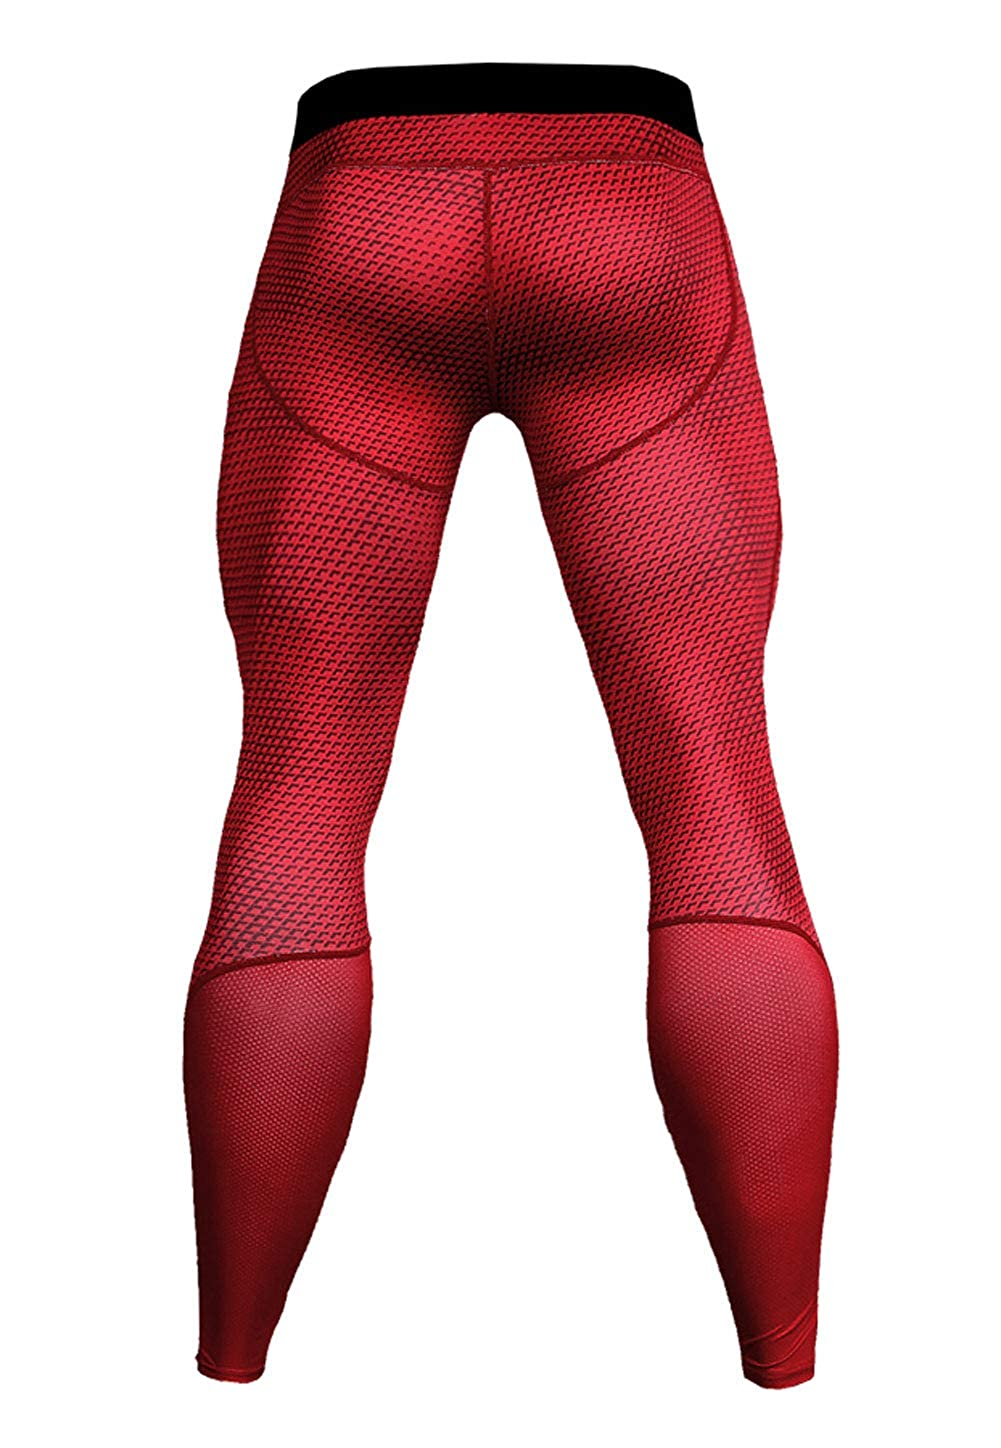 FEOYA Mens Compression Quick Dry Pants Sport Workout Baselayer Tights Legging